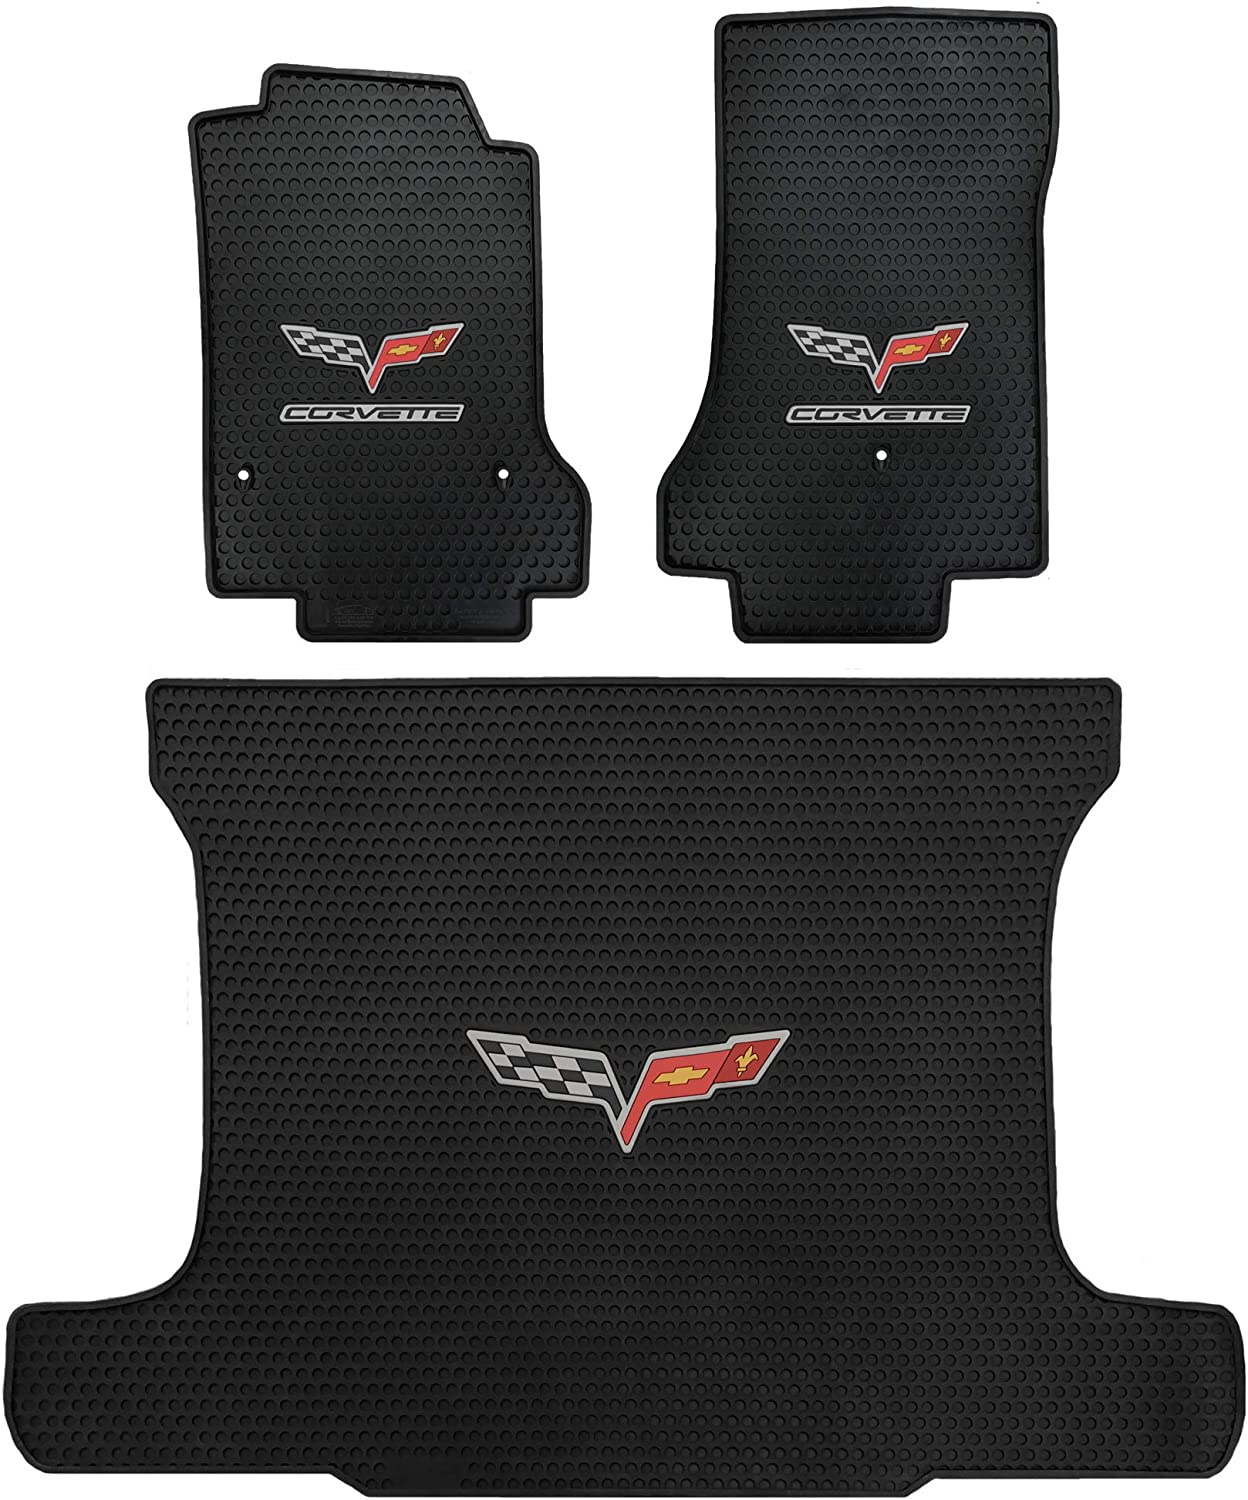 GGBAILEY D51142-F1A-GY-LP Custom Fit Car Mats for 2013 2017 Ram Pickup 1500 Grey Loop Driver /& Passenger Floor 2015 2016 2014